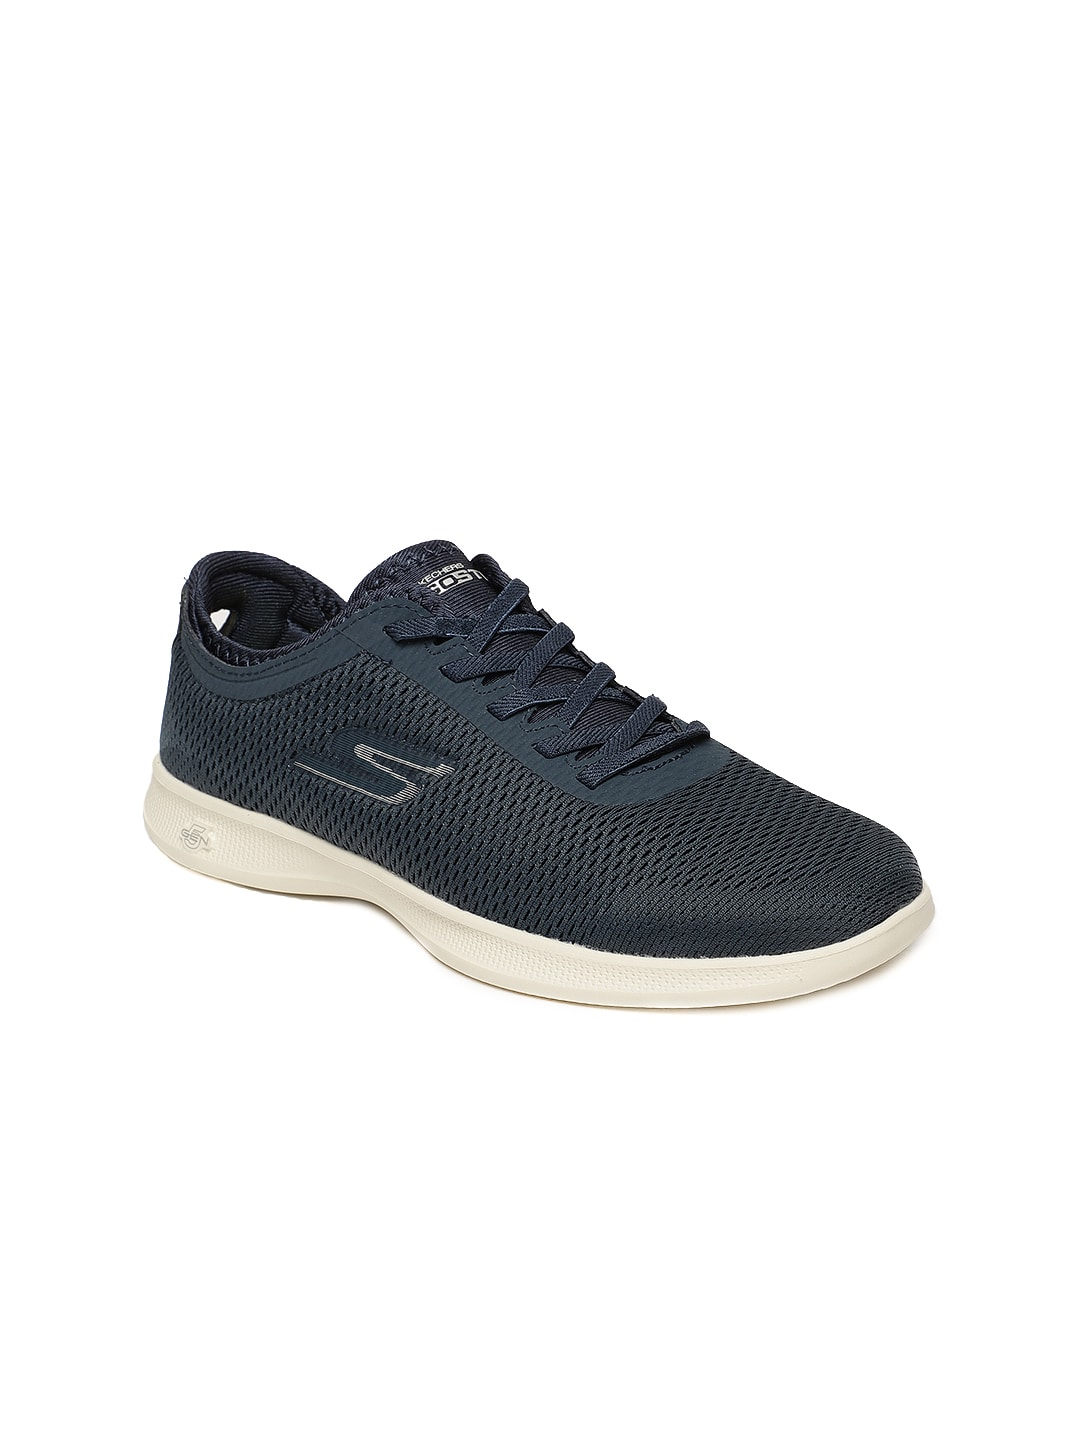 2c98fde41632 Sports Shoes for Women - Buy Women Sports Shoes Online